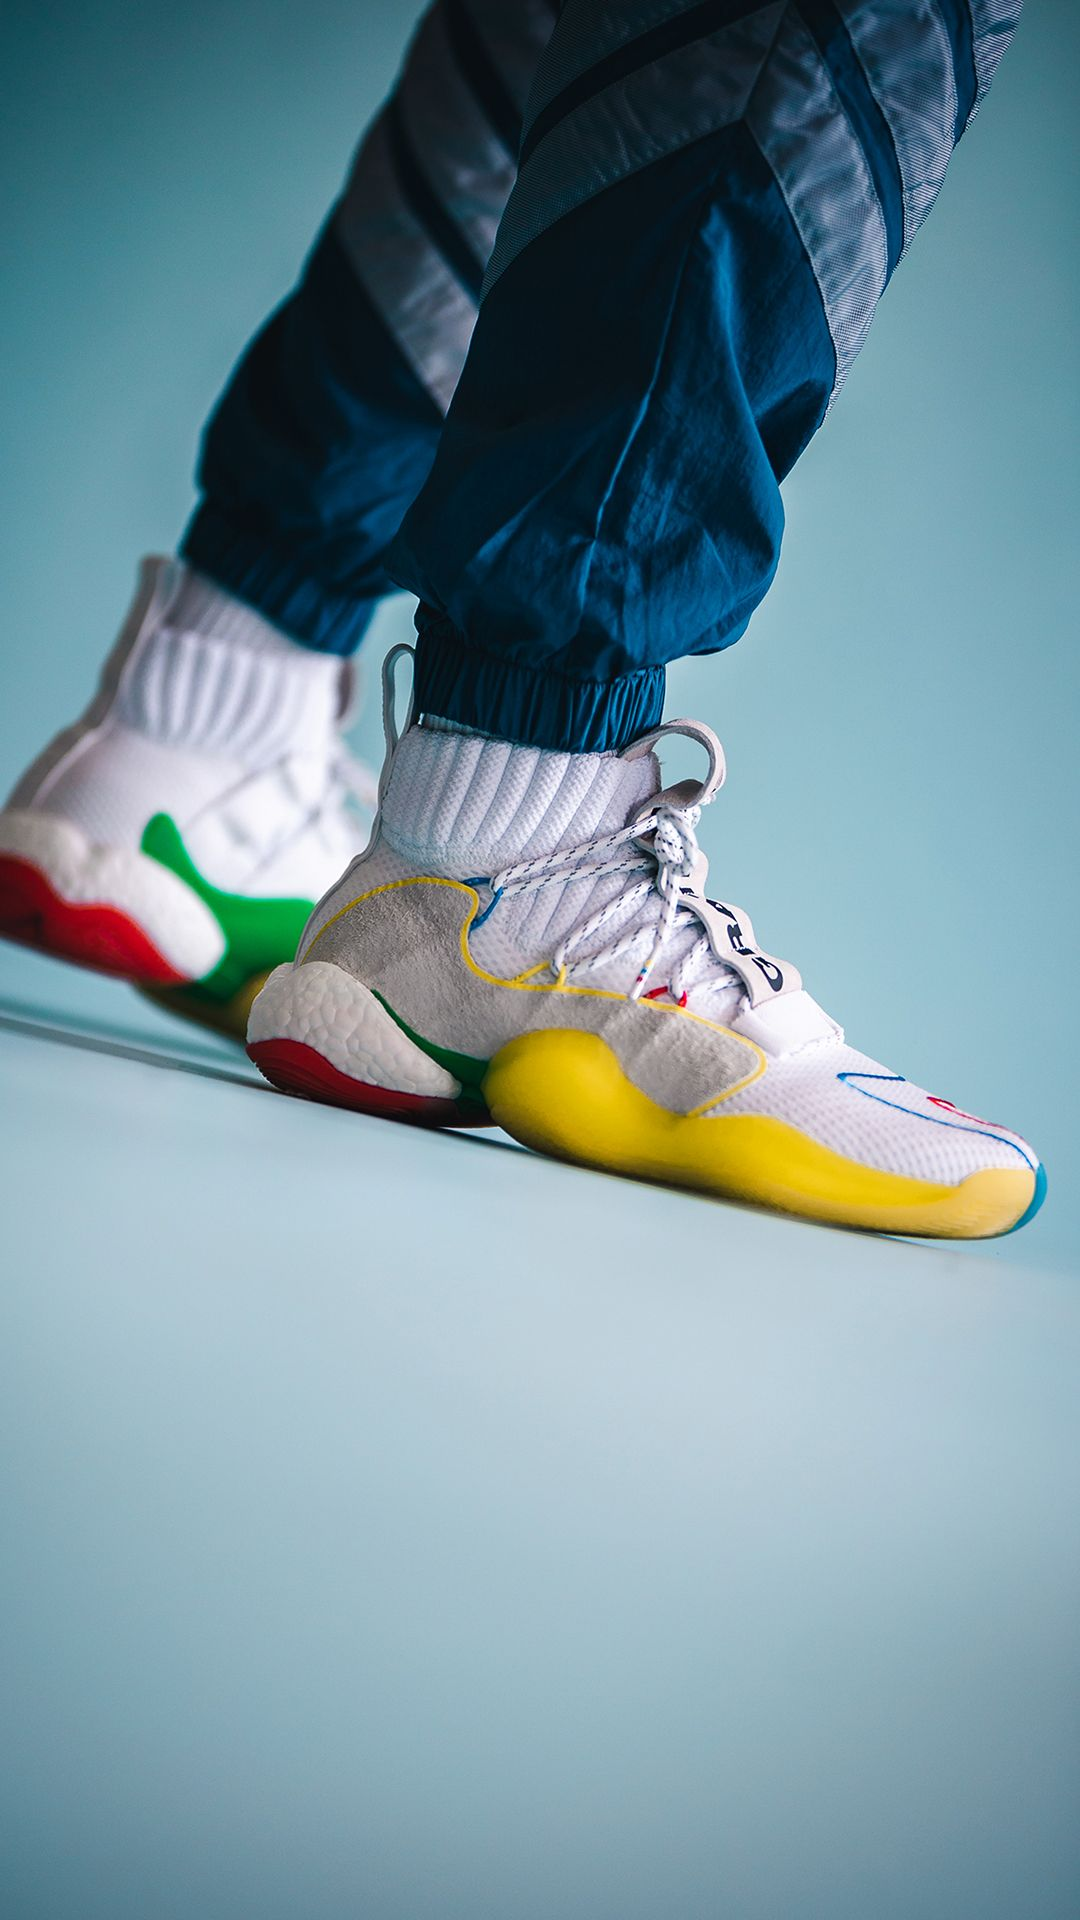 finest selection c5337 f4c69 Throughout his journey with adidas Originals, Pharrell Williams has  demonstrated his avid desire to celebrate diversity and connect different  cultures ...